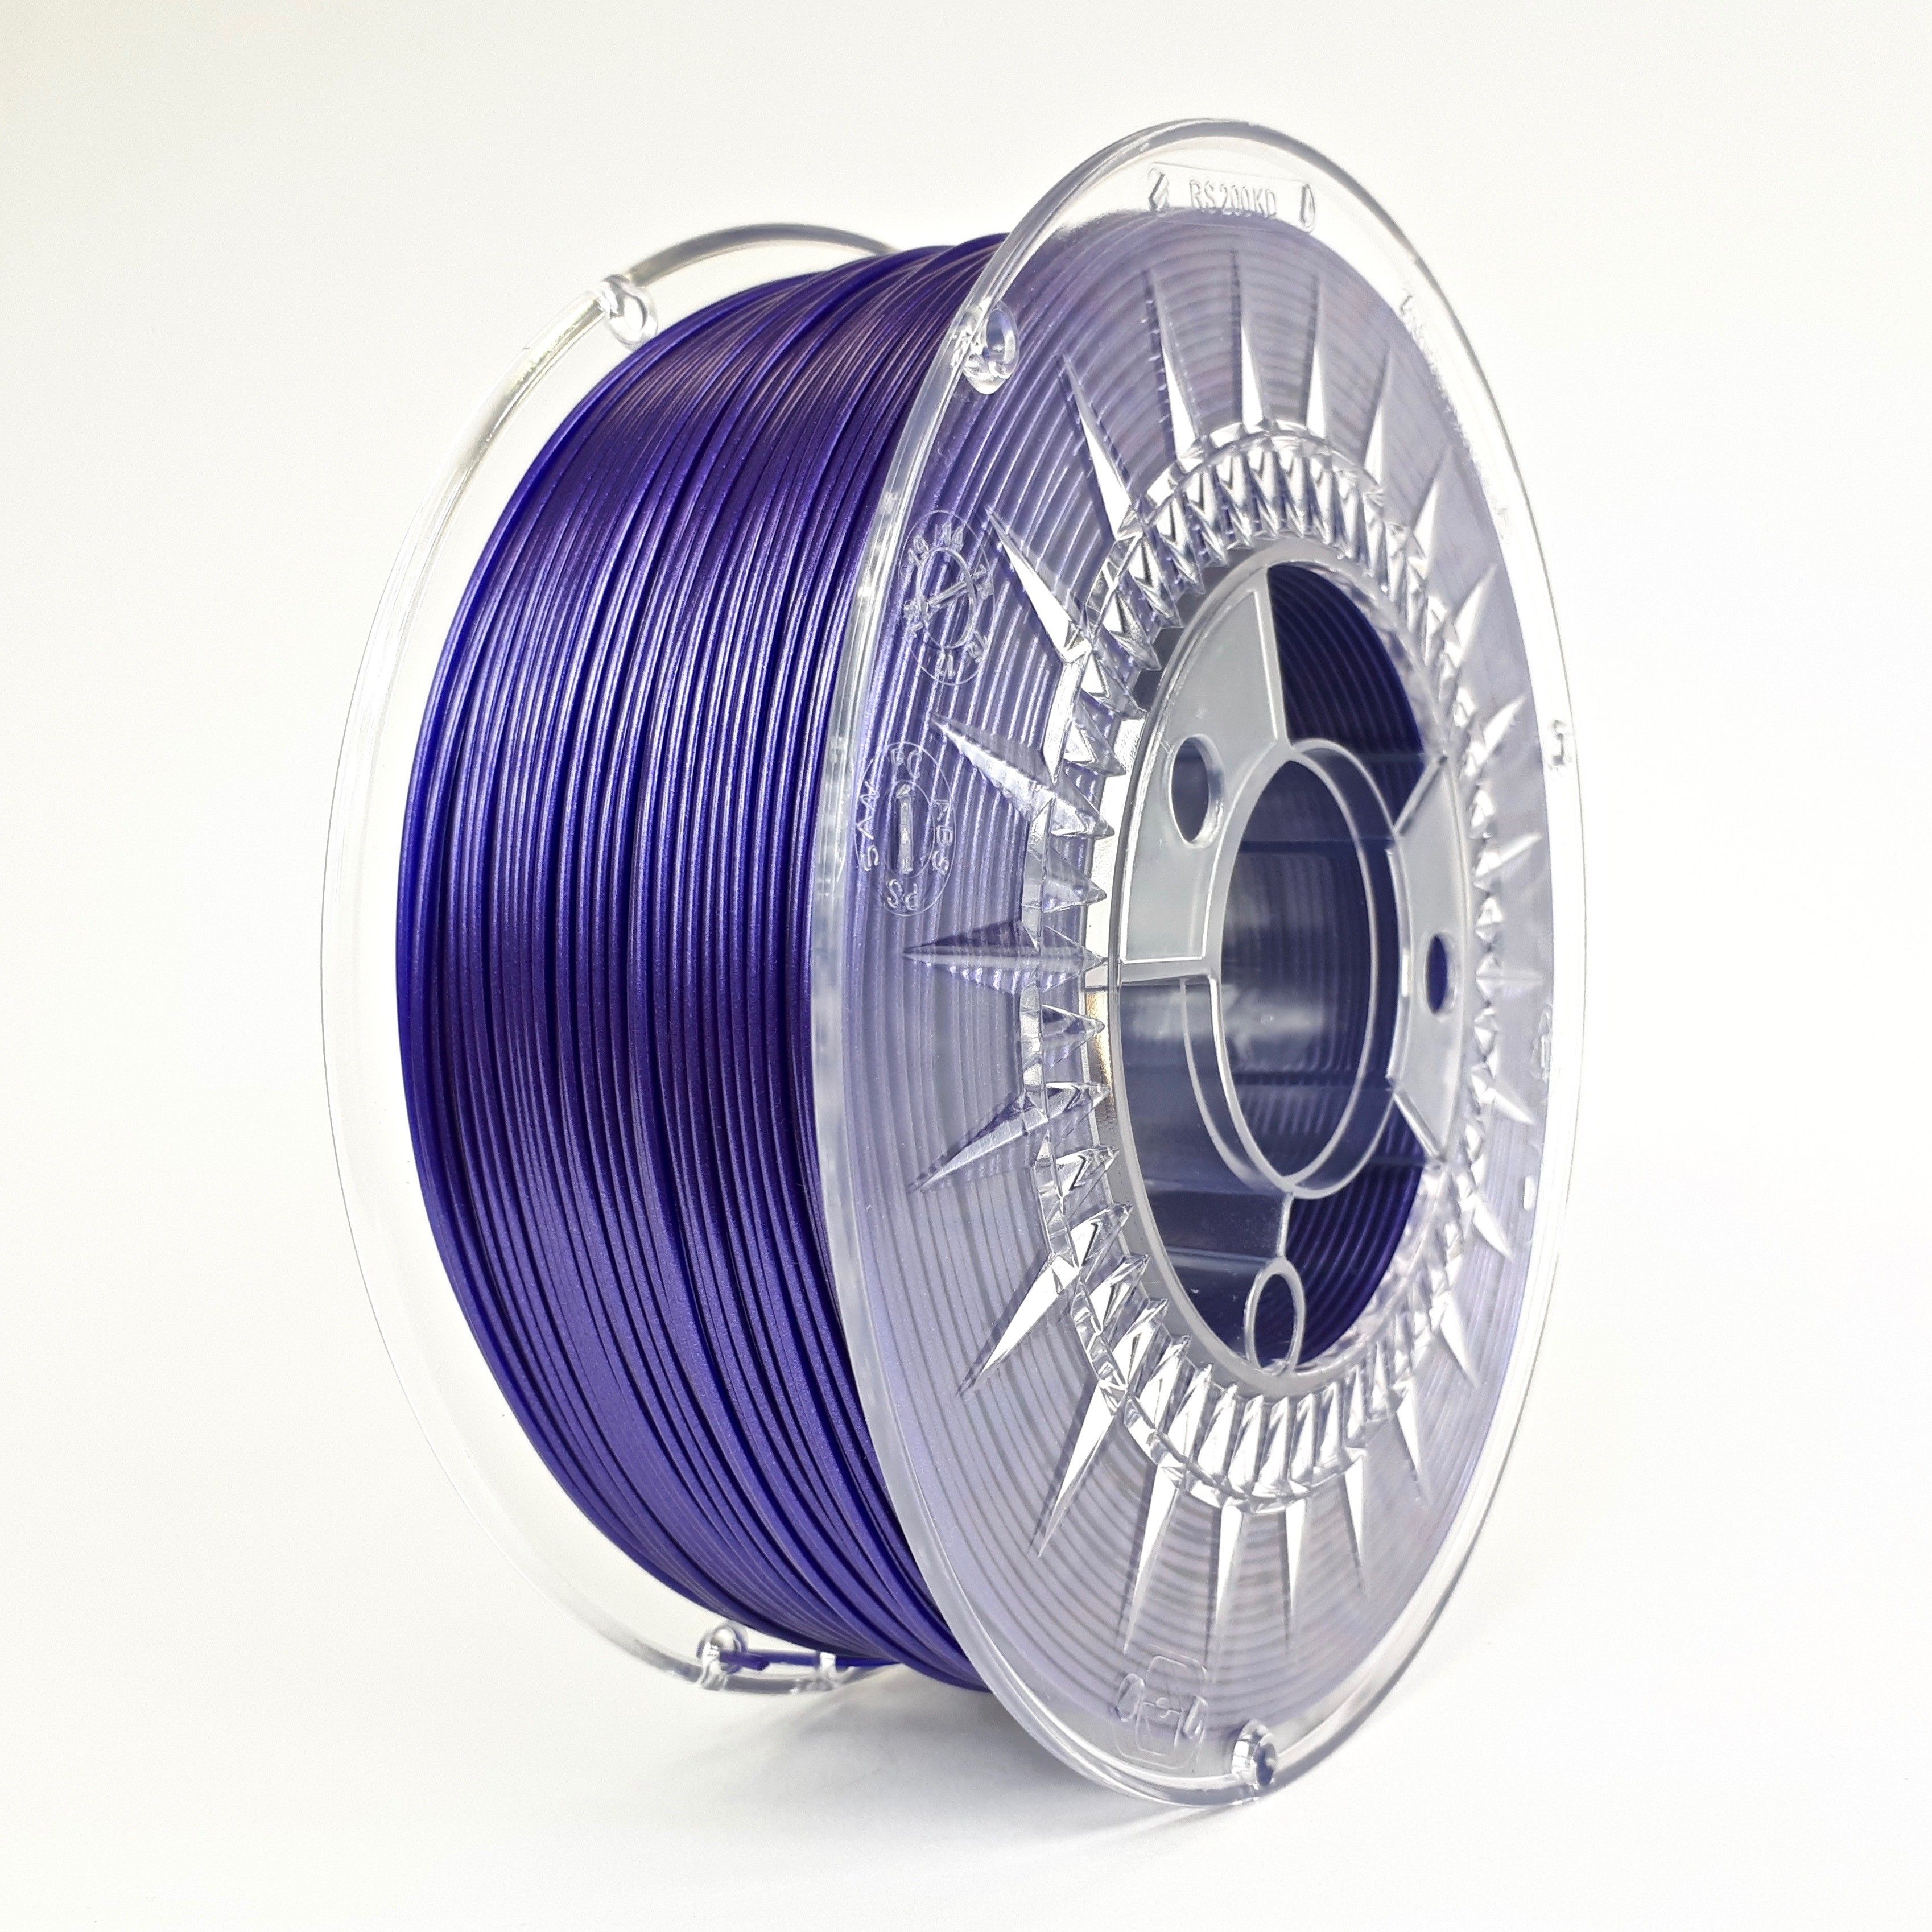 Filament DEVIL DESIGN / PLA / FIALOVÁ GALAXY / 1,75 mm / 1 kg.